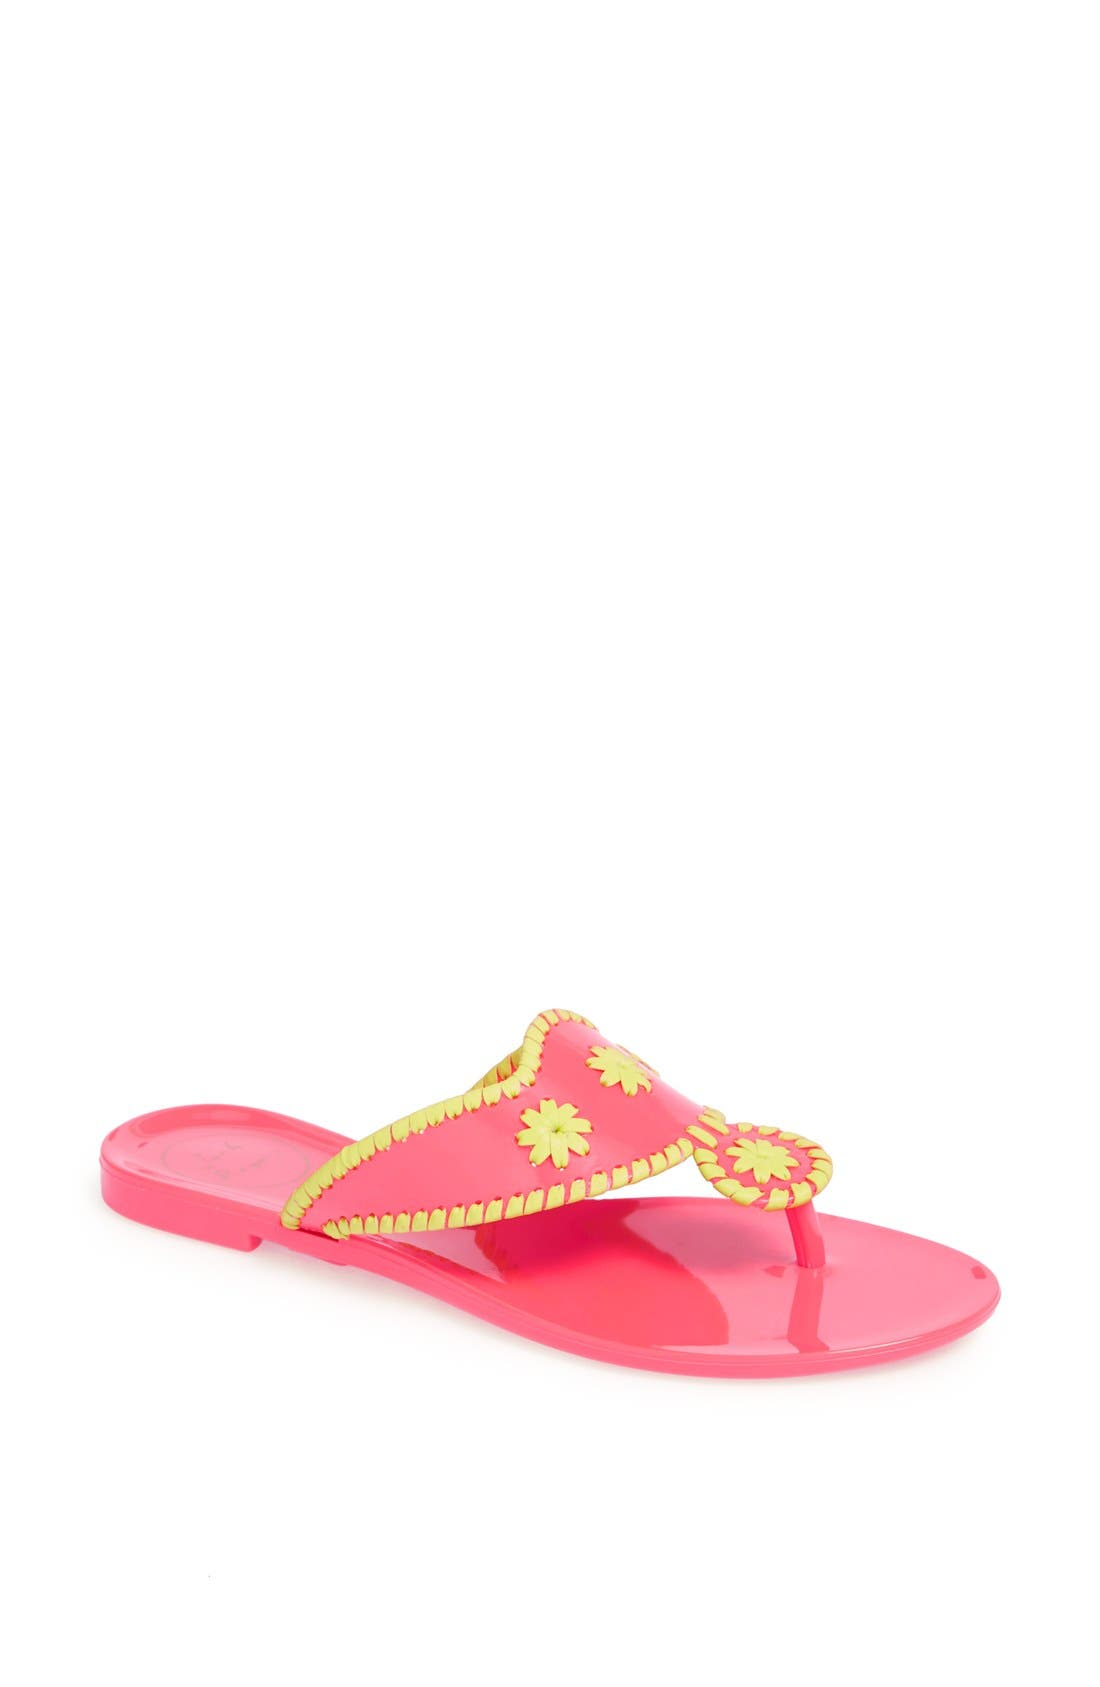 Main Image - Jack Rogers 'Jr' Jelly Sandal